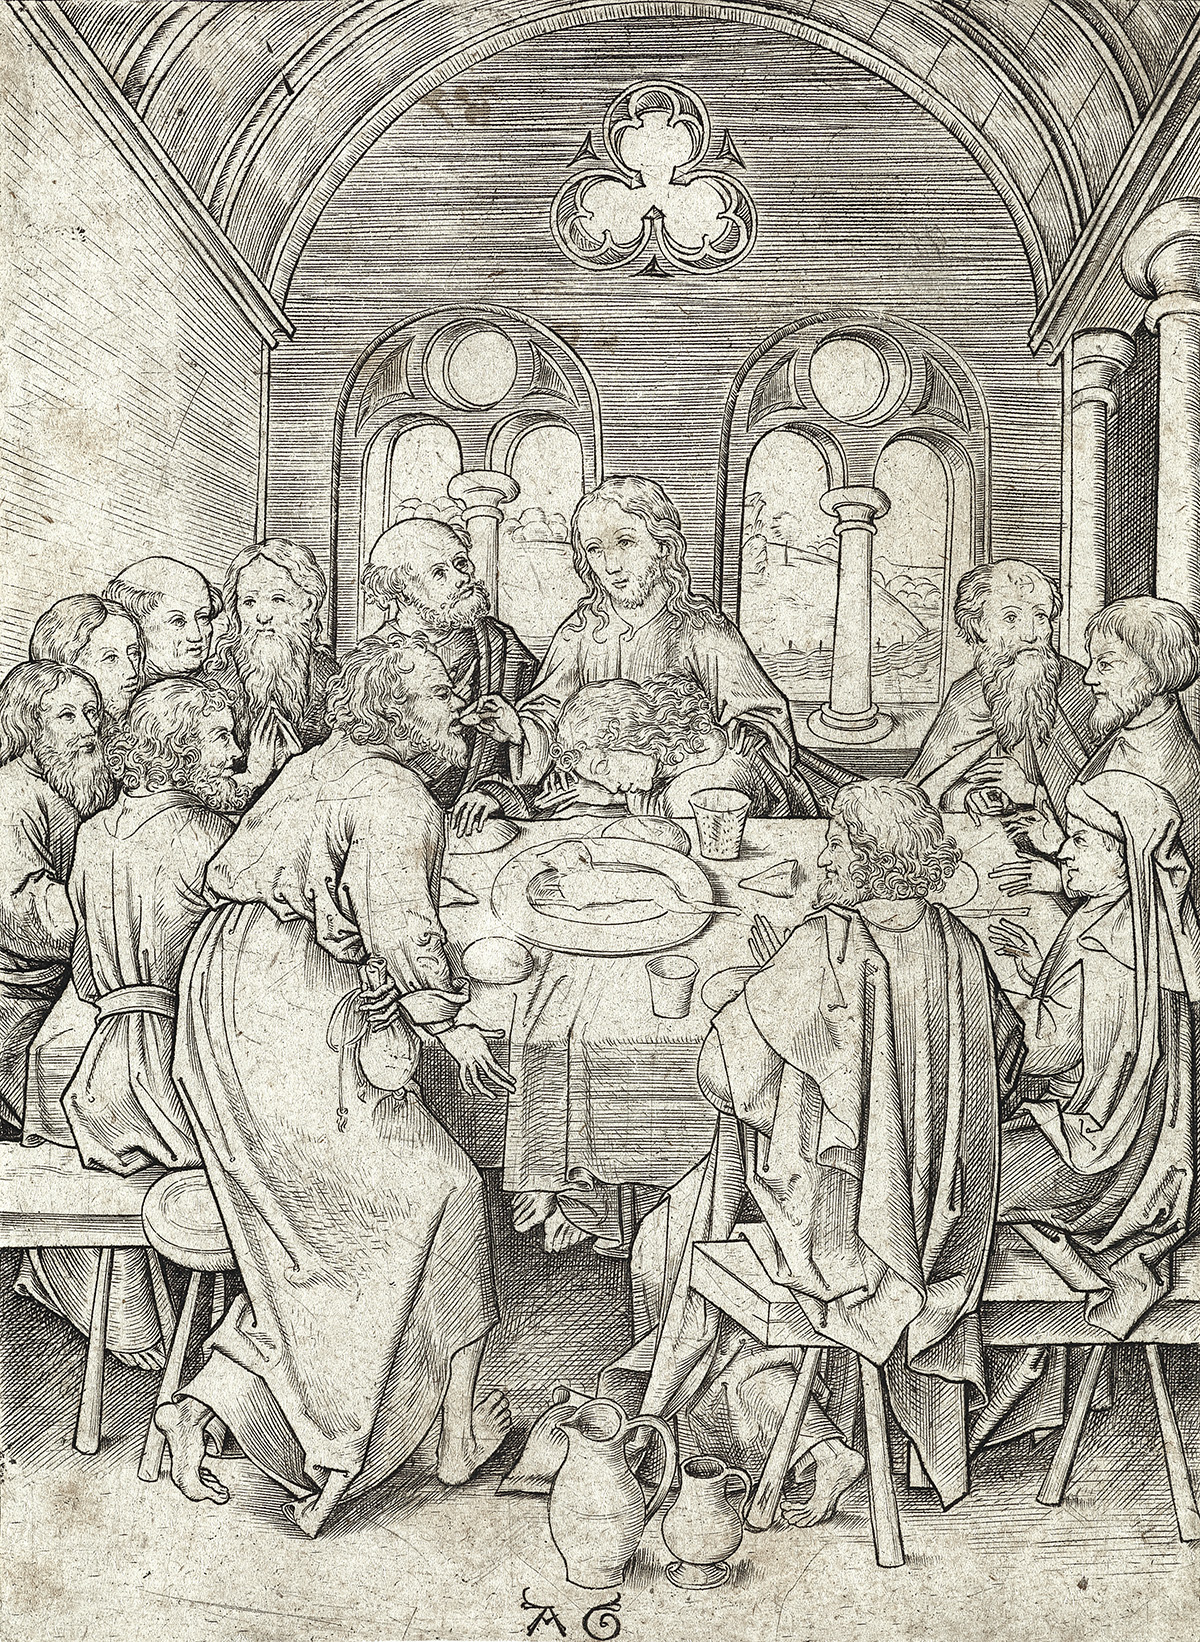 MASTER-AG-The-Last-Supper